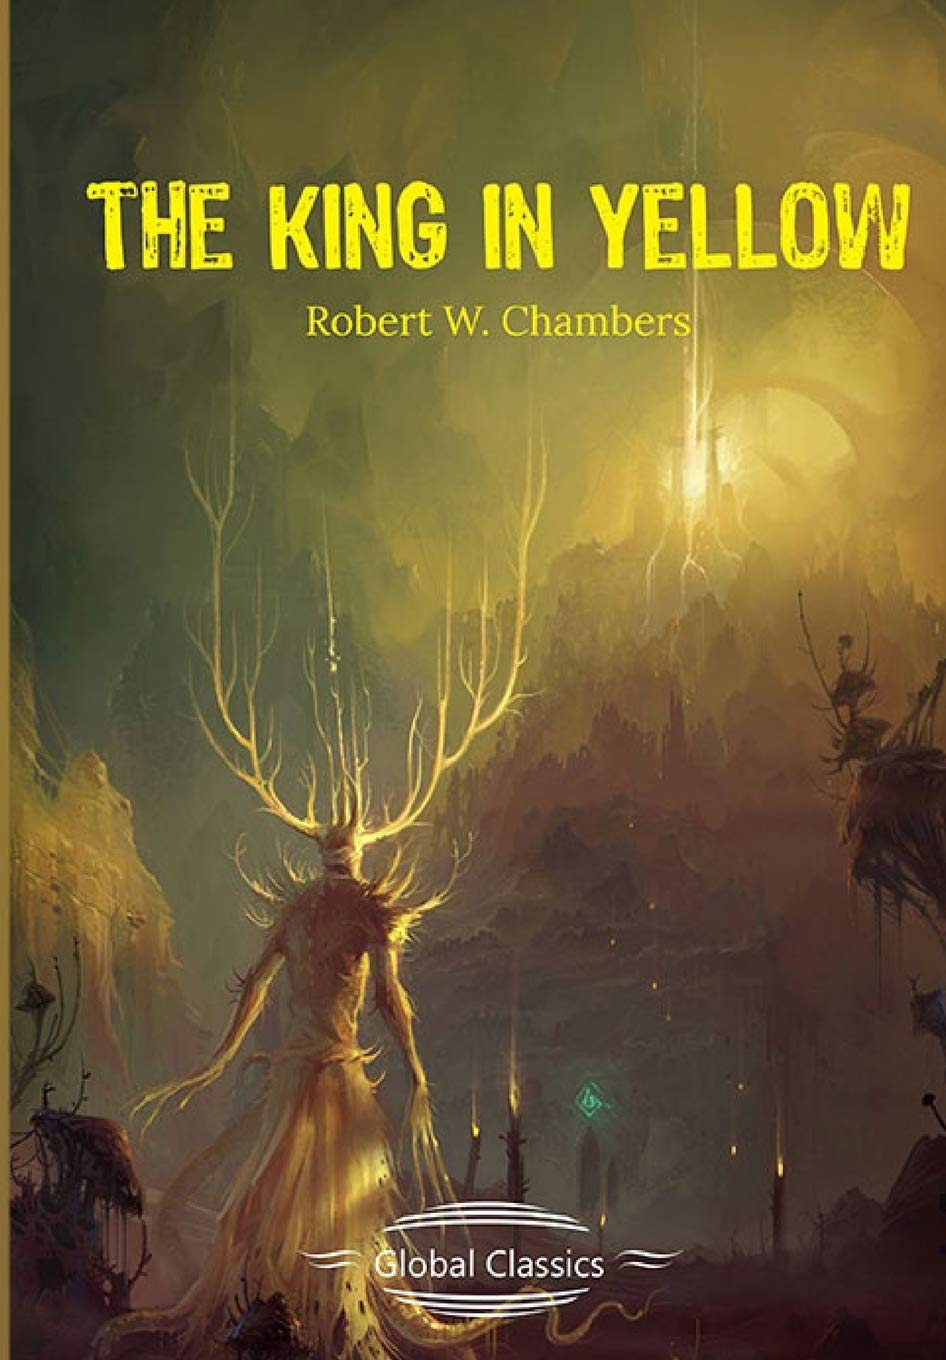 The King in Yellow Deluxe Edition